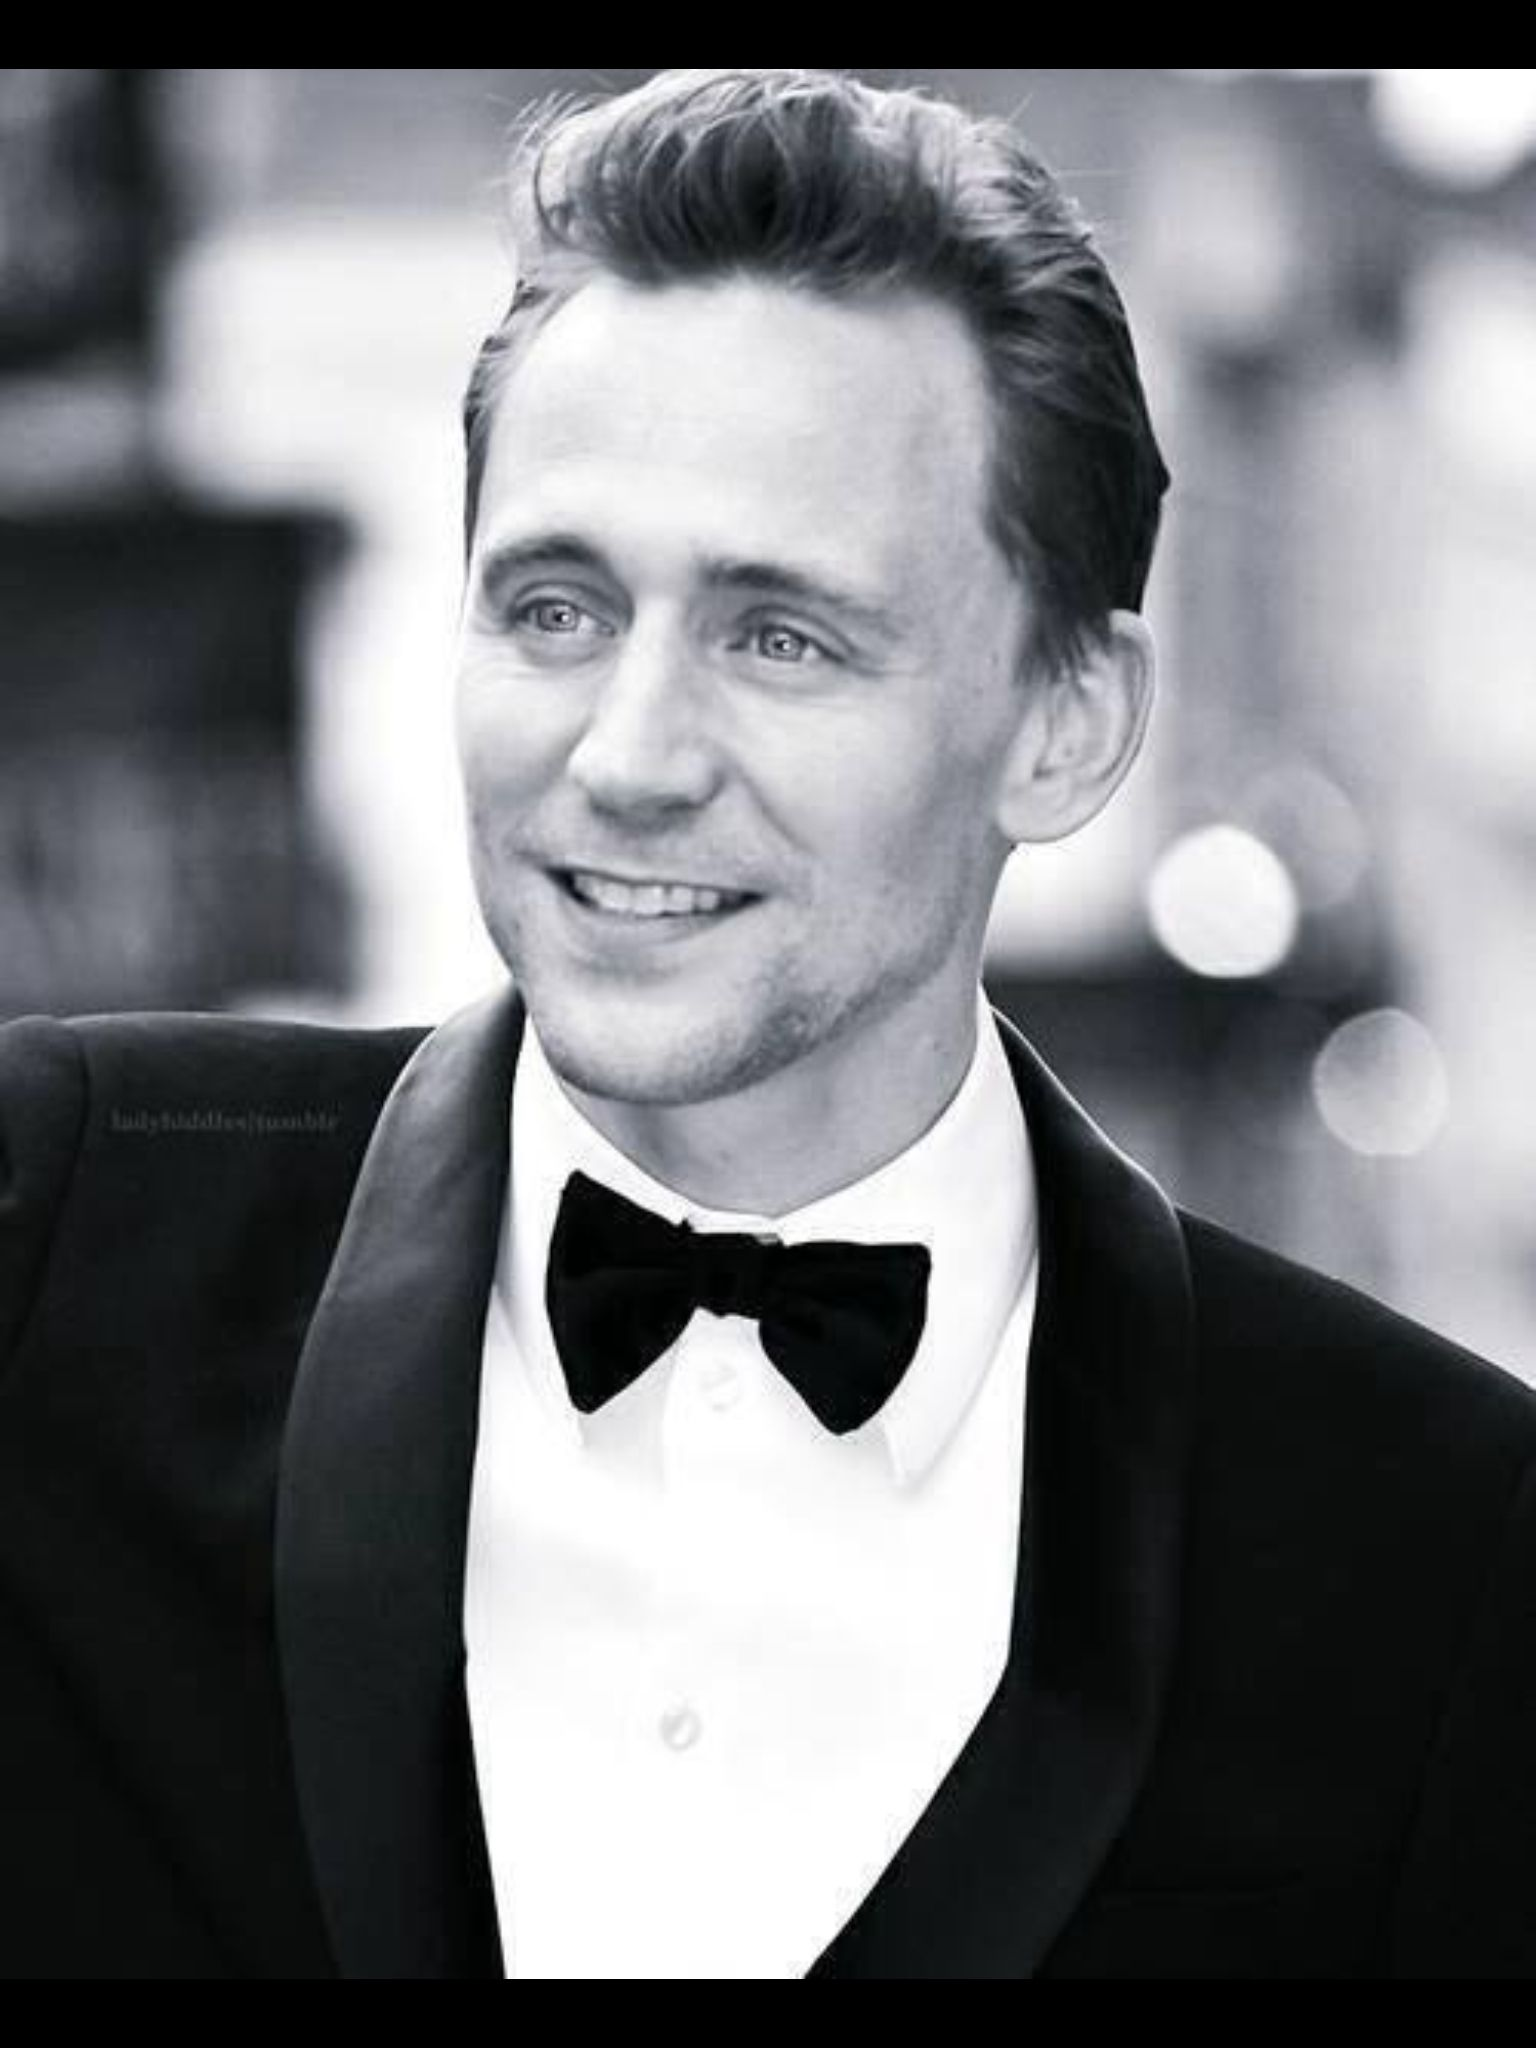 Tom Hiddleston looking amazing, as usual. Found it in FB page Tom Hiddleston. I'm obsessed. Yes.